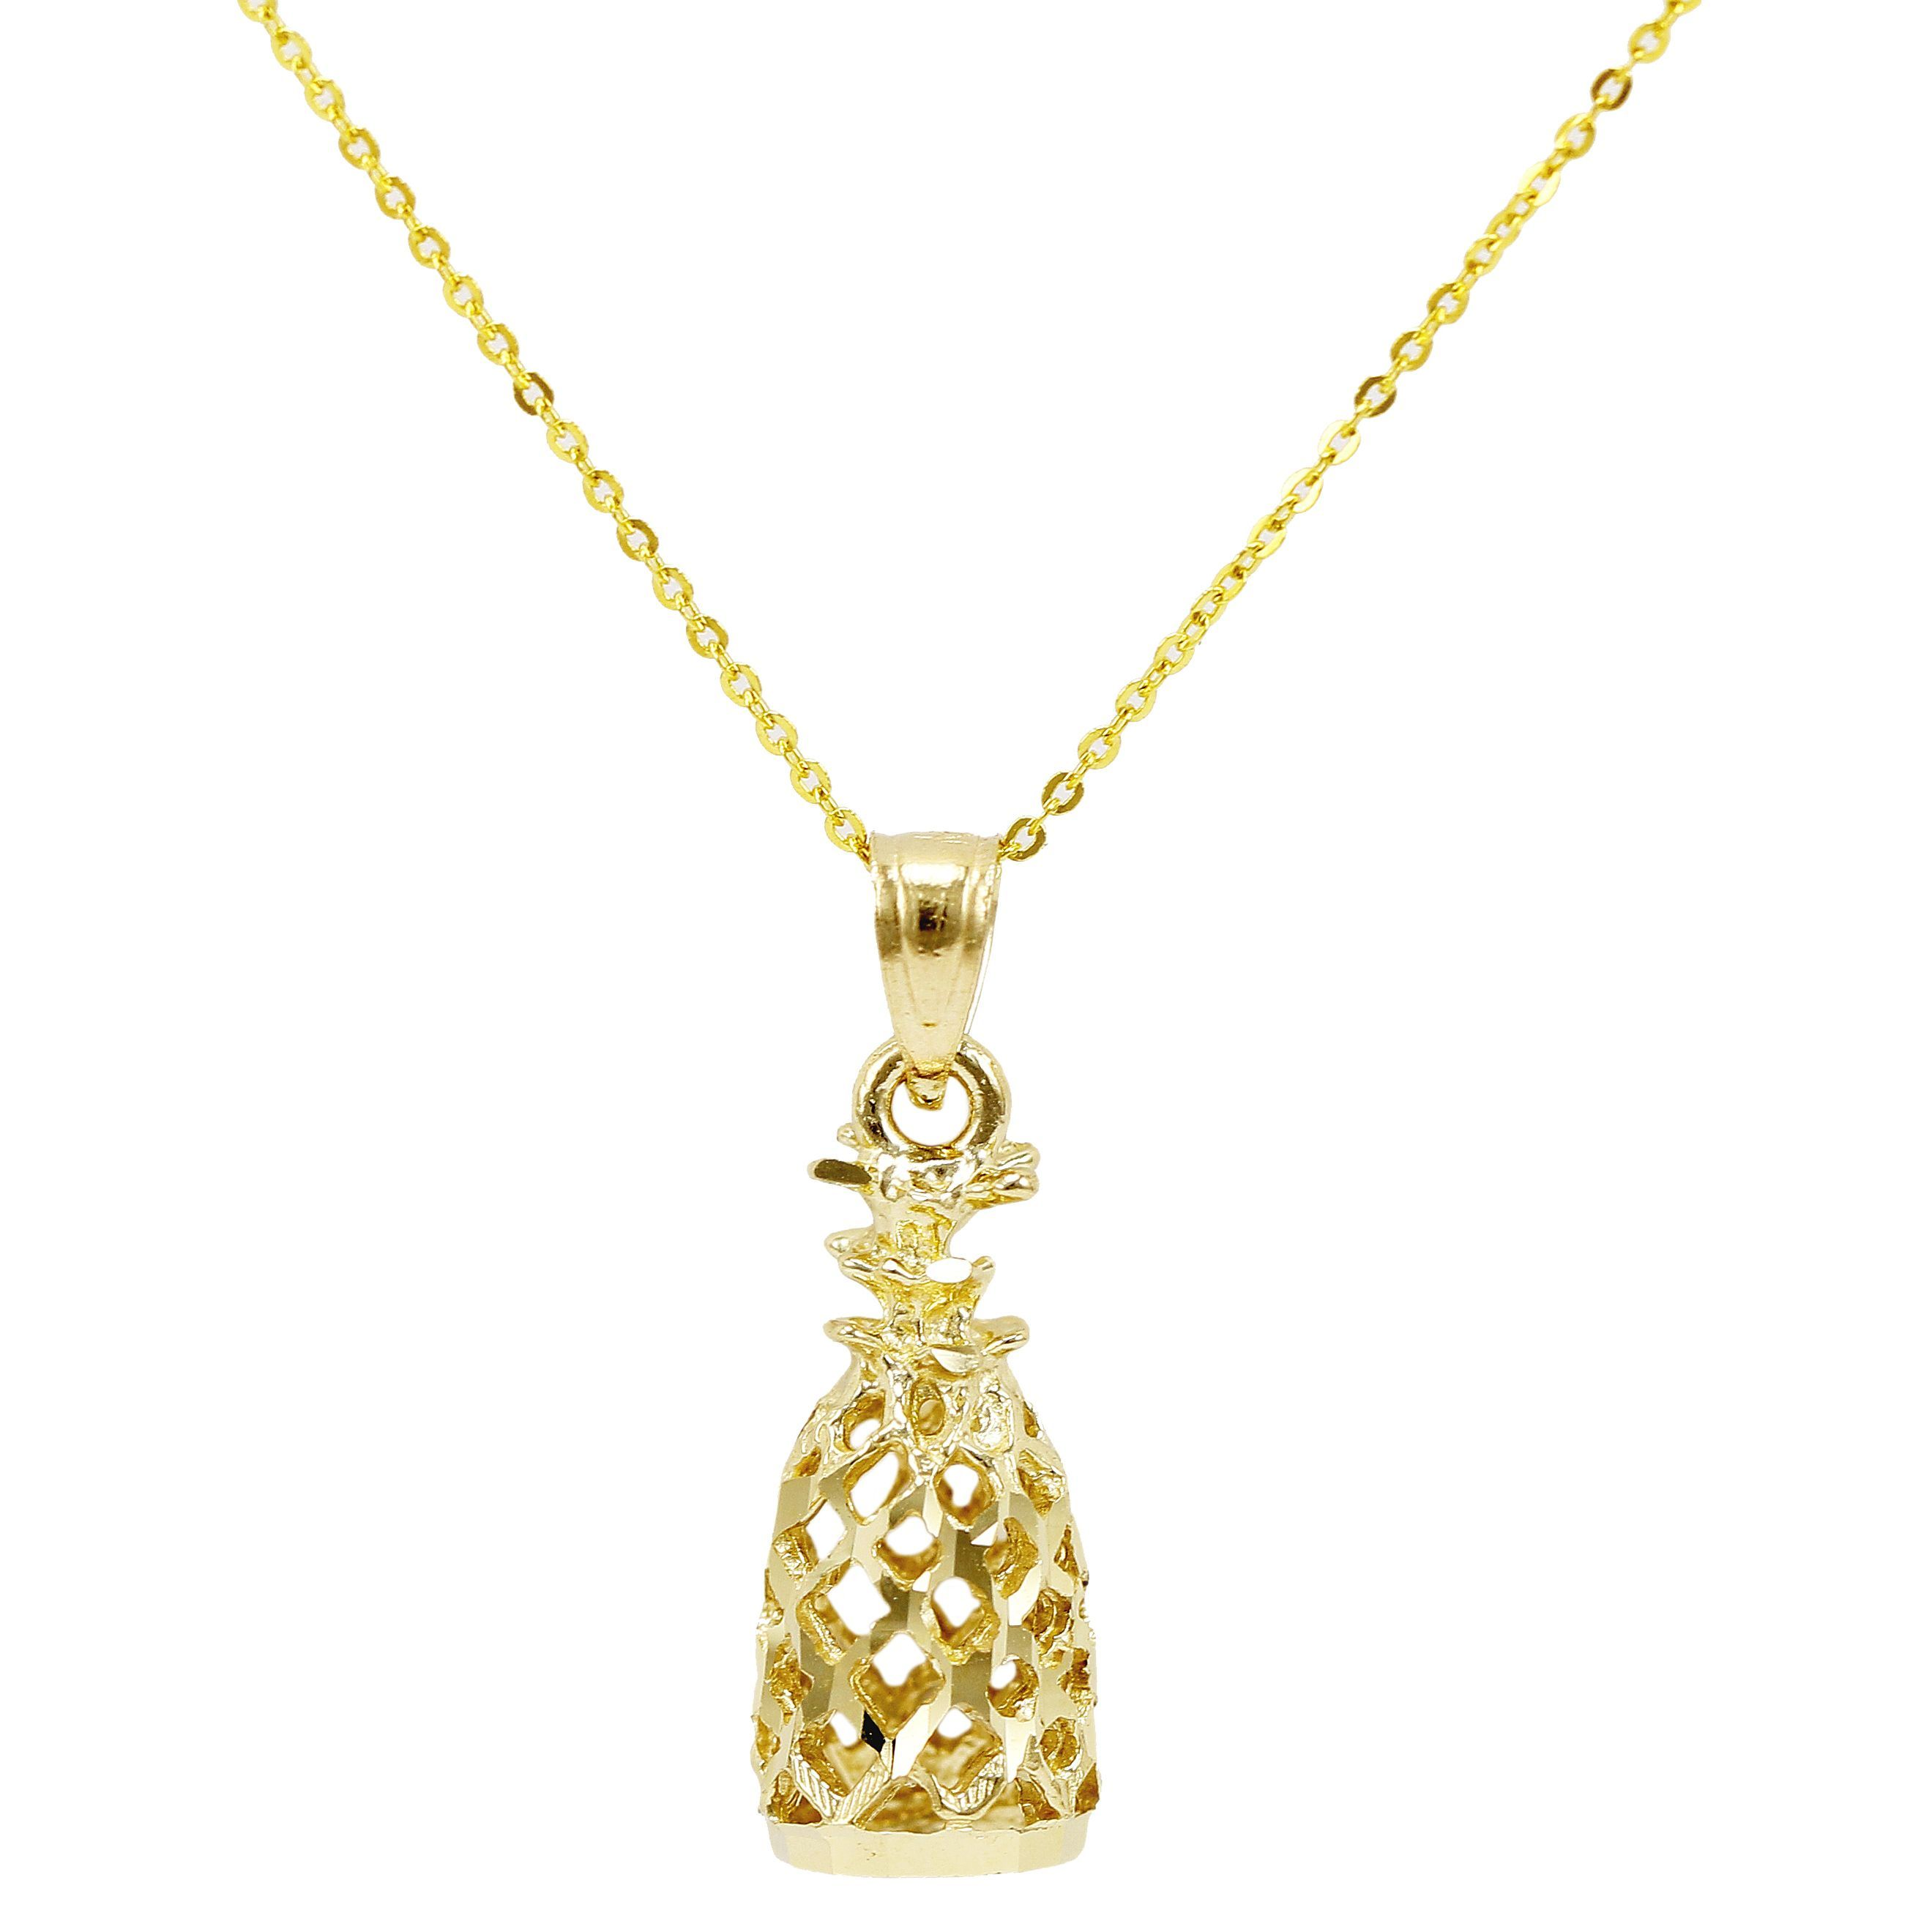 chains en sultan necklace necklaces brand collection cod gold